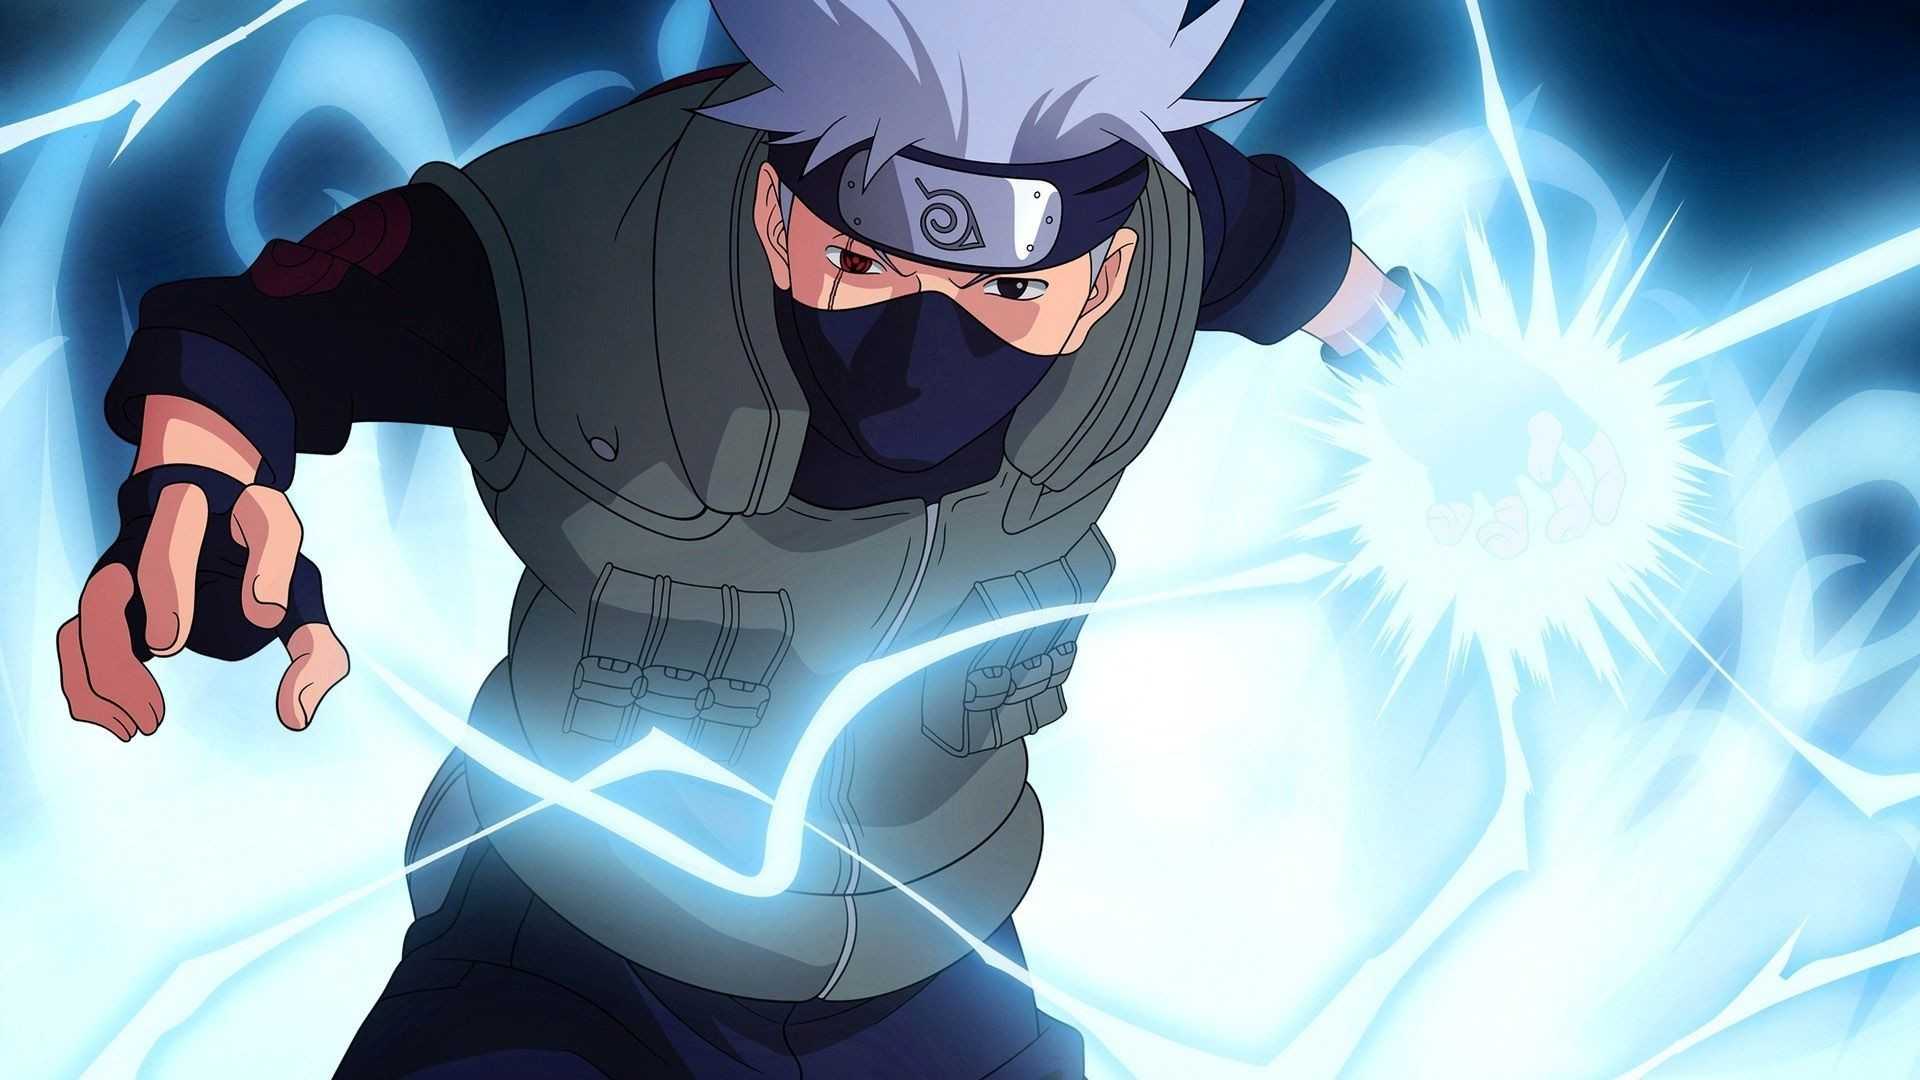 Naruto 1920x1080 Wallpaper (78+ pictures)